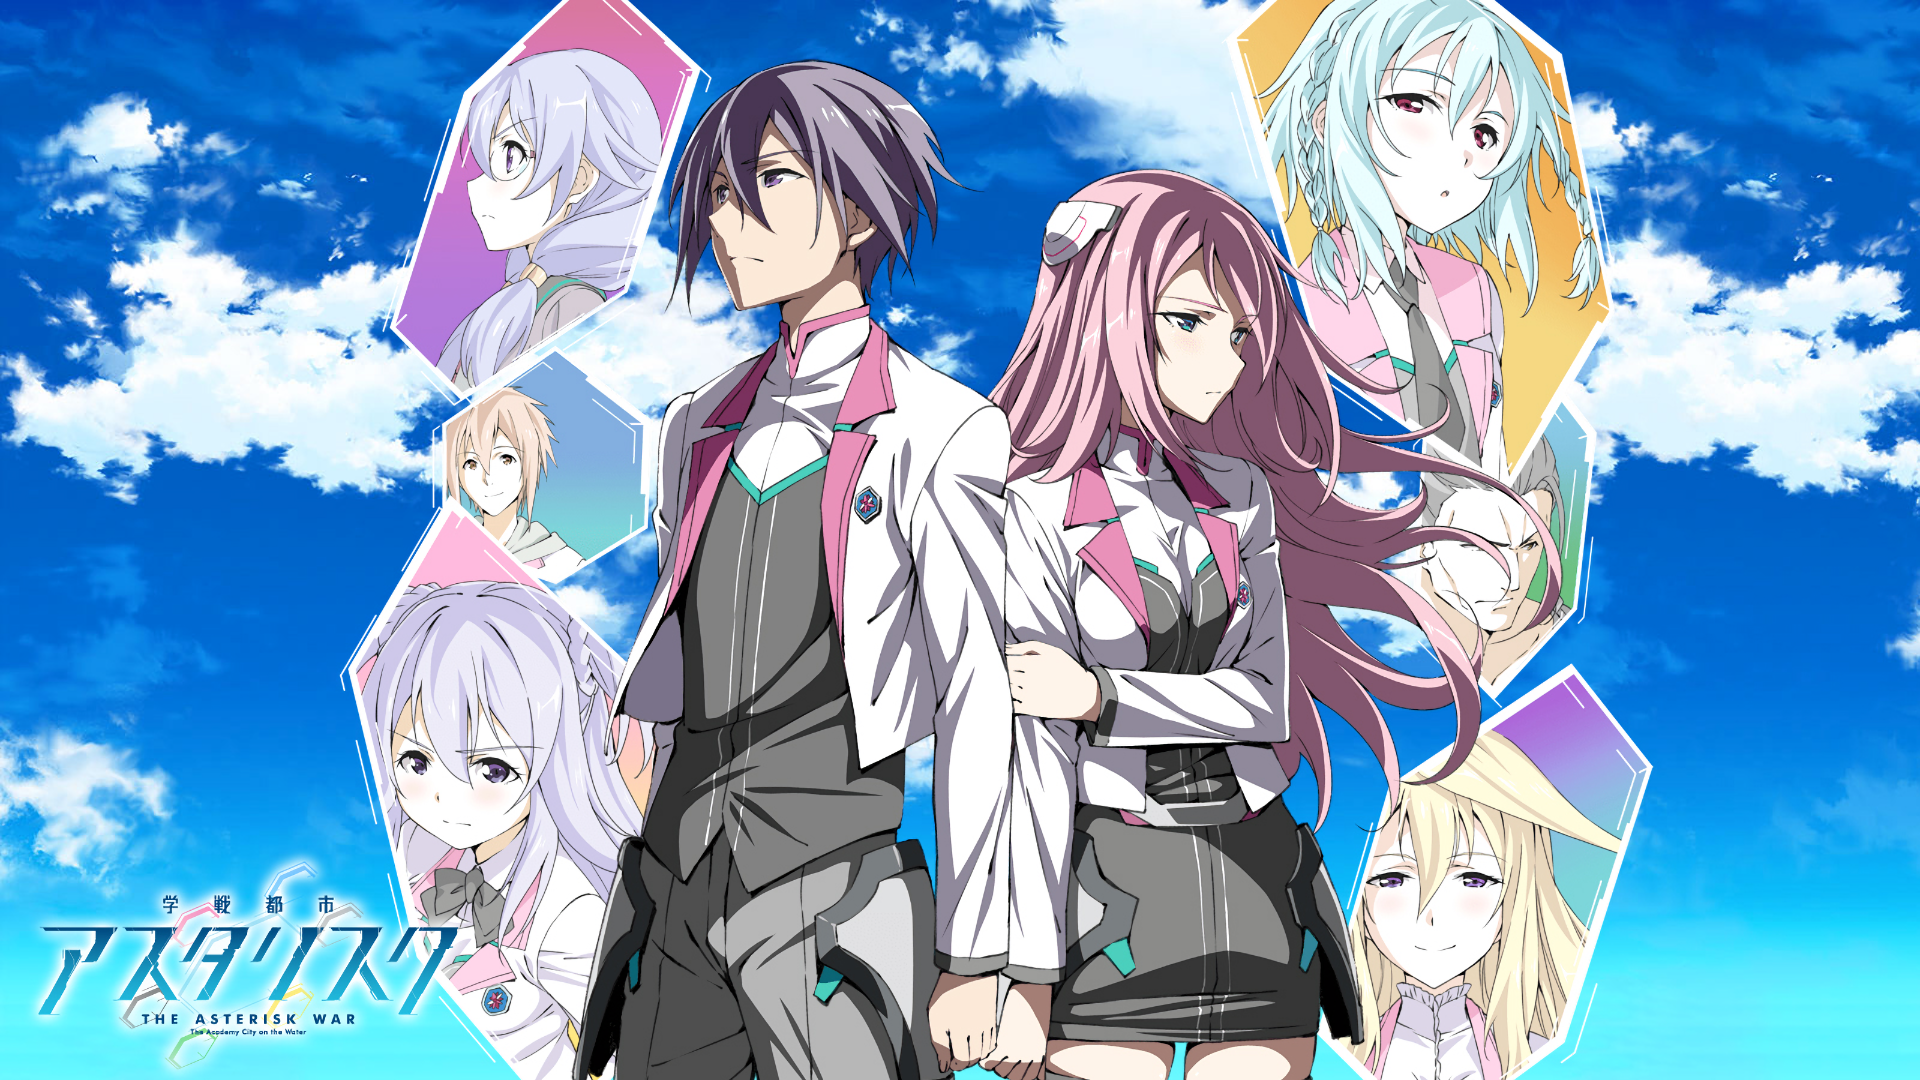 Image result for Asterisk war